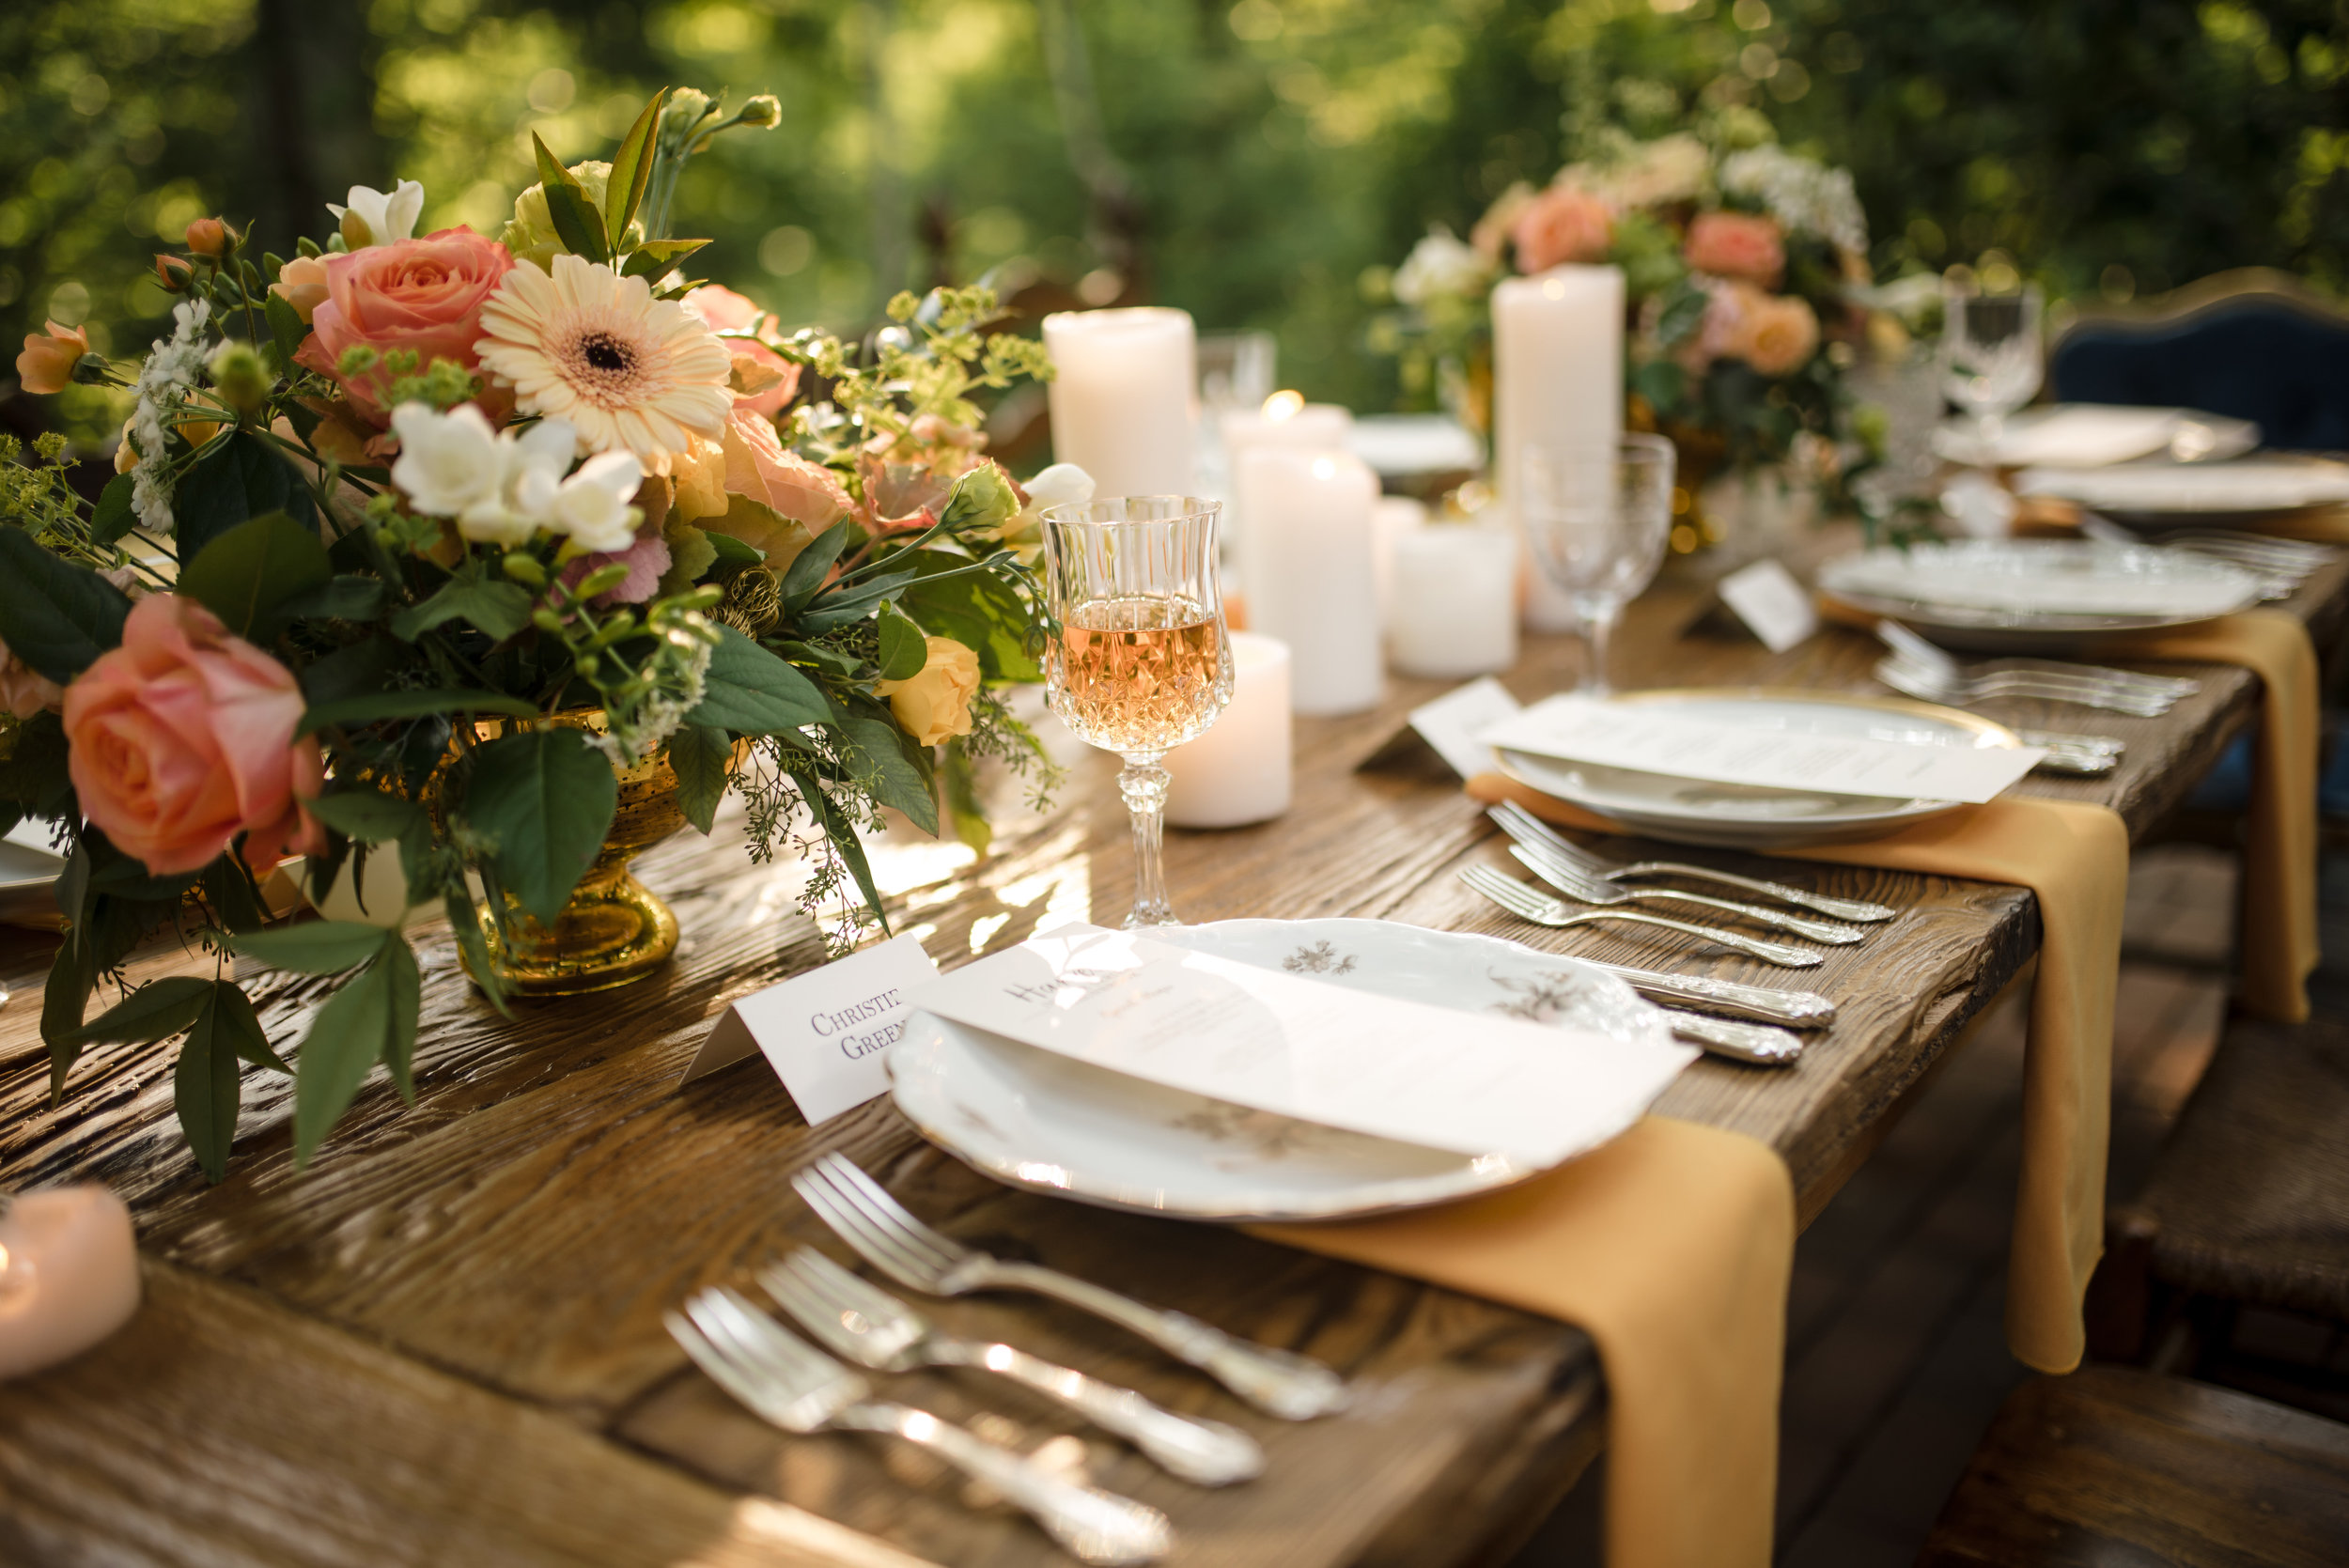 West-Chester-PA-Faunbrook-Harvest-Dinner-Series-Apricot-ChristieGreenPhotography-33.jpg